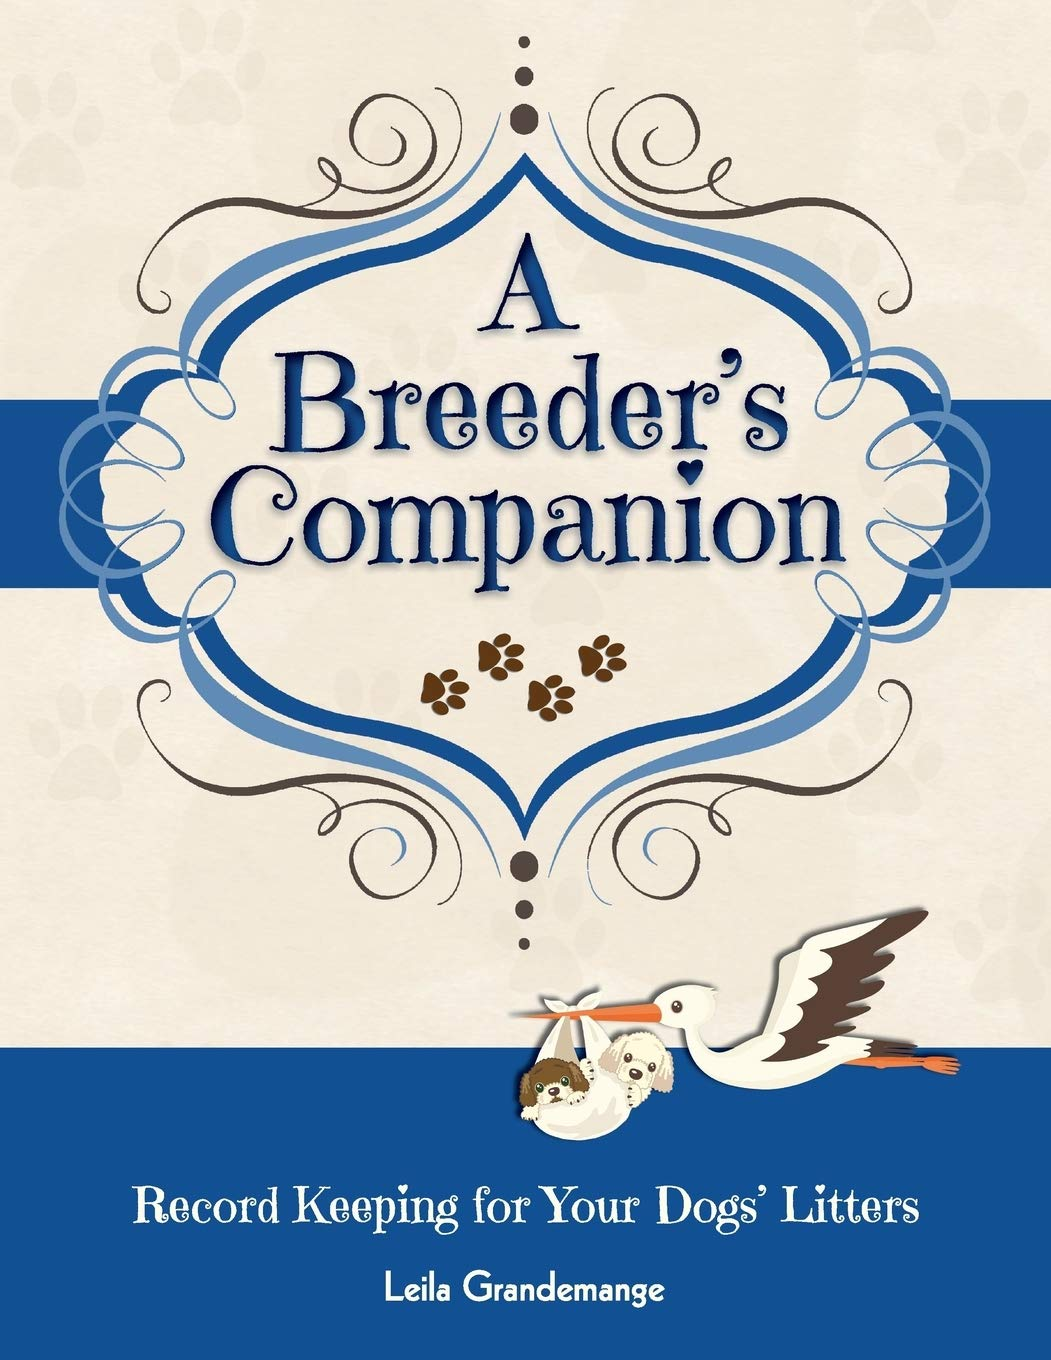 Image OfA Breeder's Companion: Record Keeping For Your Dogs' Litters